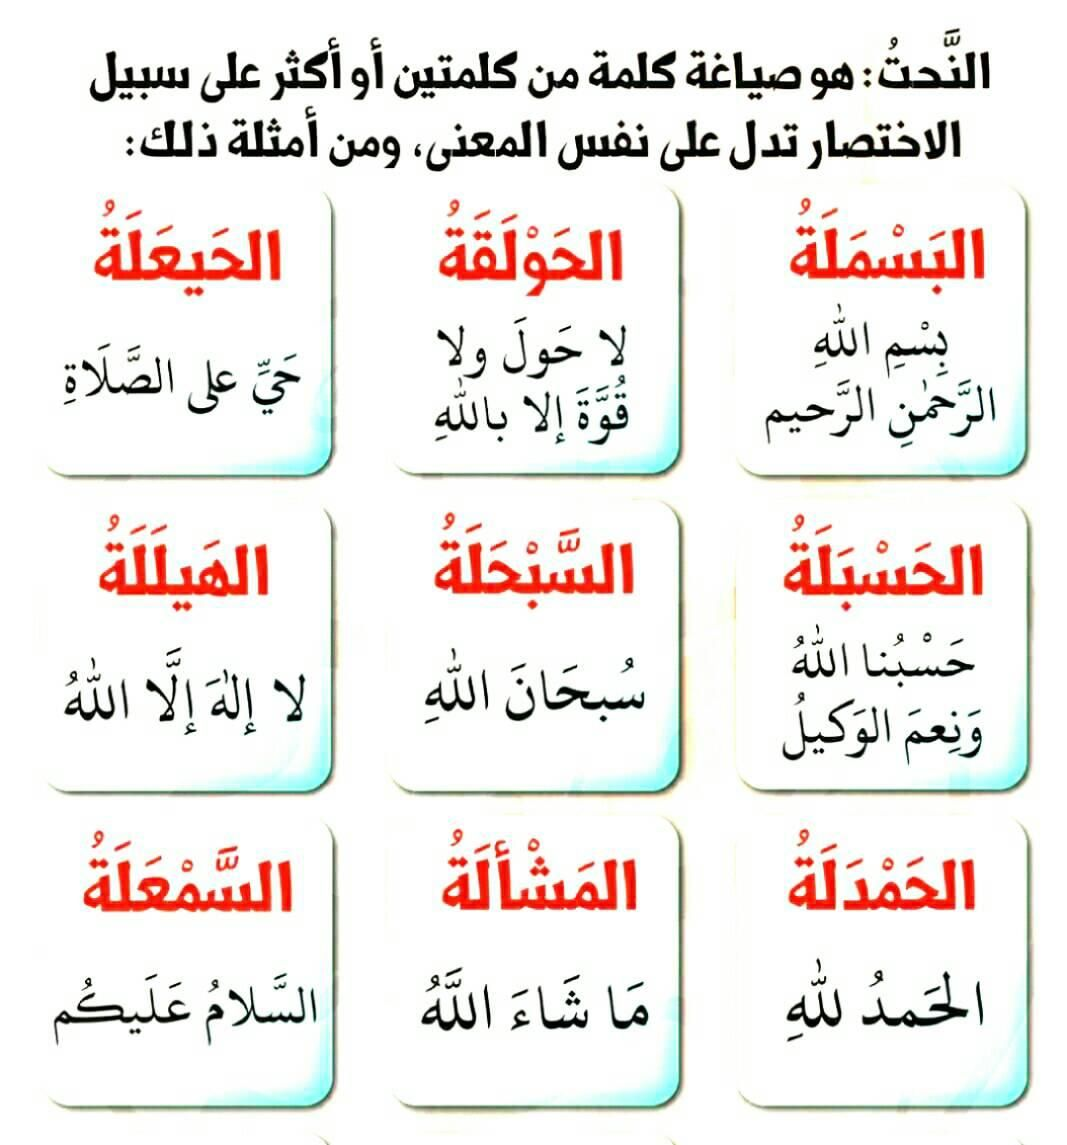 Pin By Essam Sayed Mohamed On Mix In 2021 Arabic Language Arabic Quotes Language